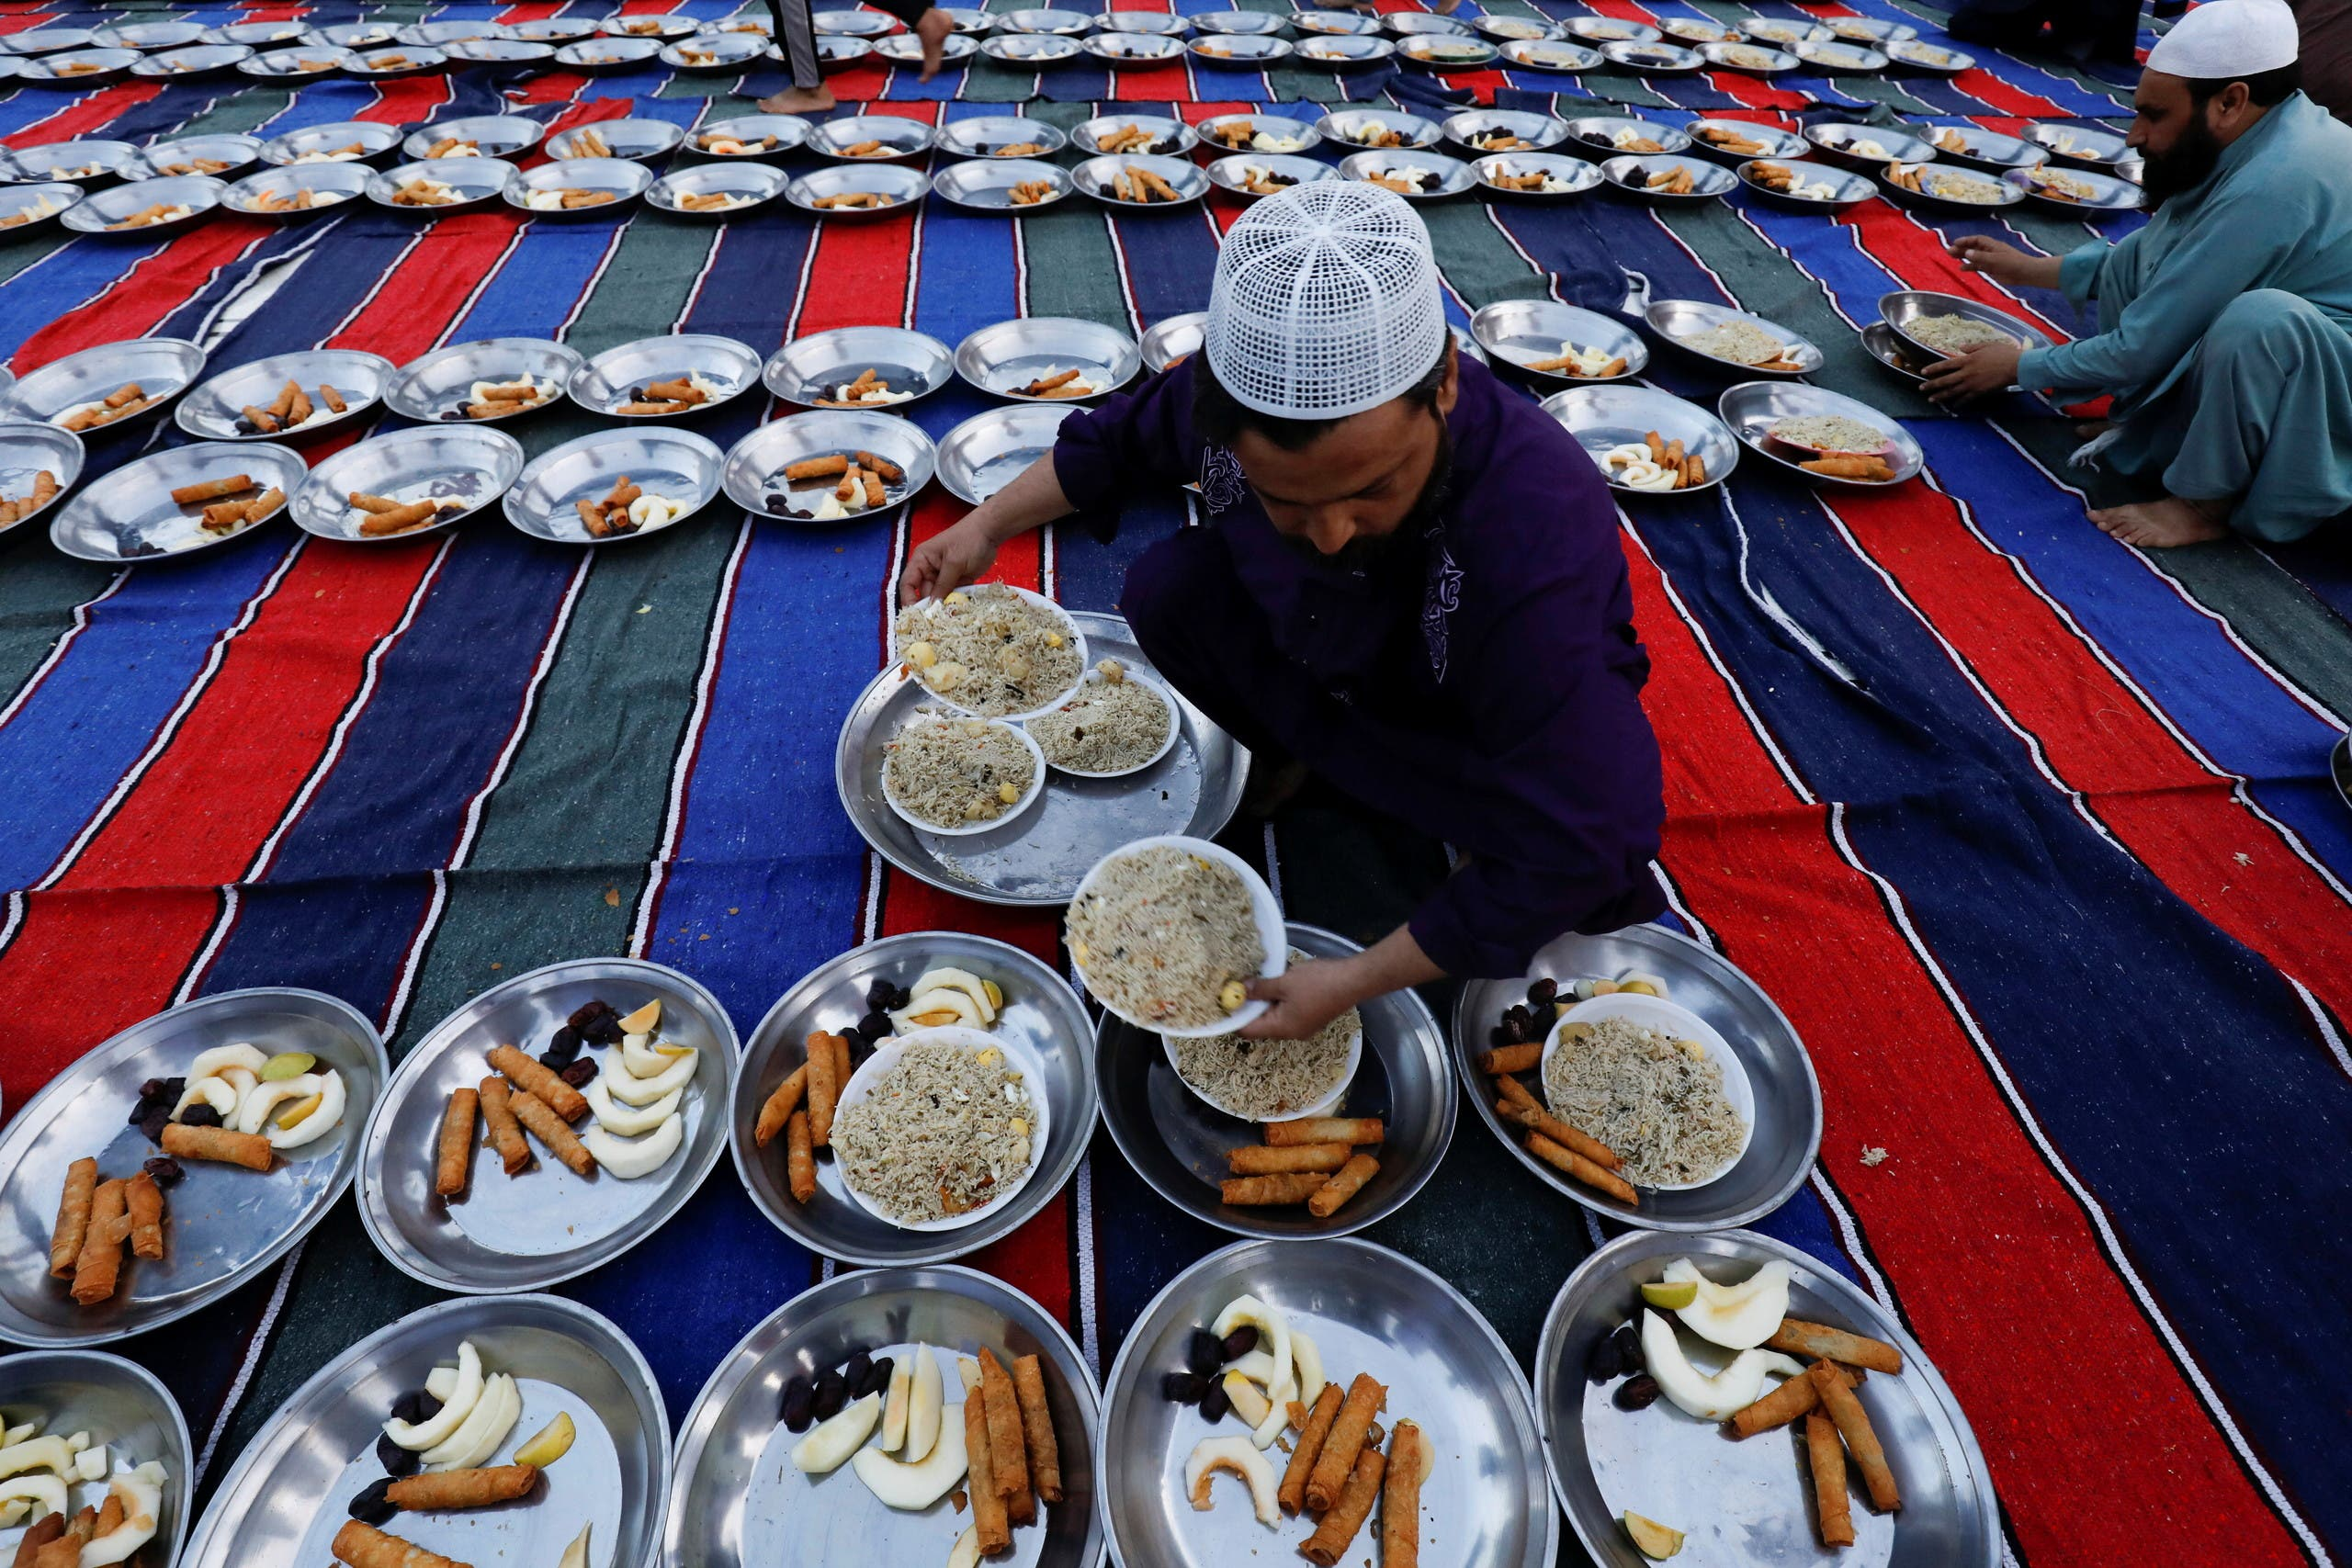 A man arranges plates of food for Iftar (breaking fast) meal during the fasting month of Ramadan, as the outbreak of the coronavirus disease (COVID-19) continues, at a mosque in Karachi, Pakistan. (Reuters)